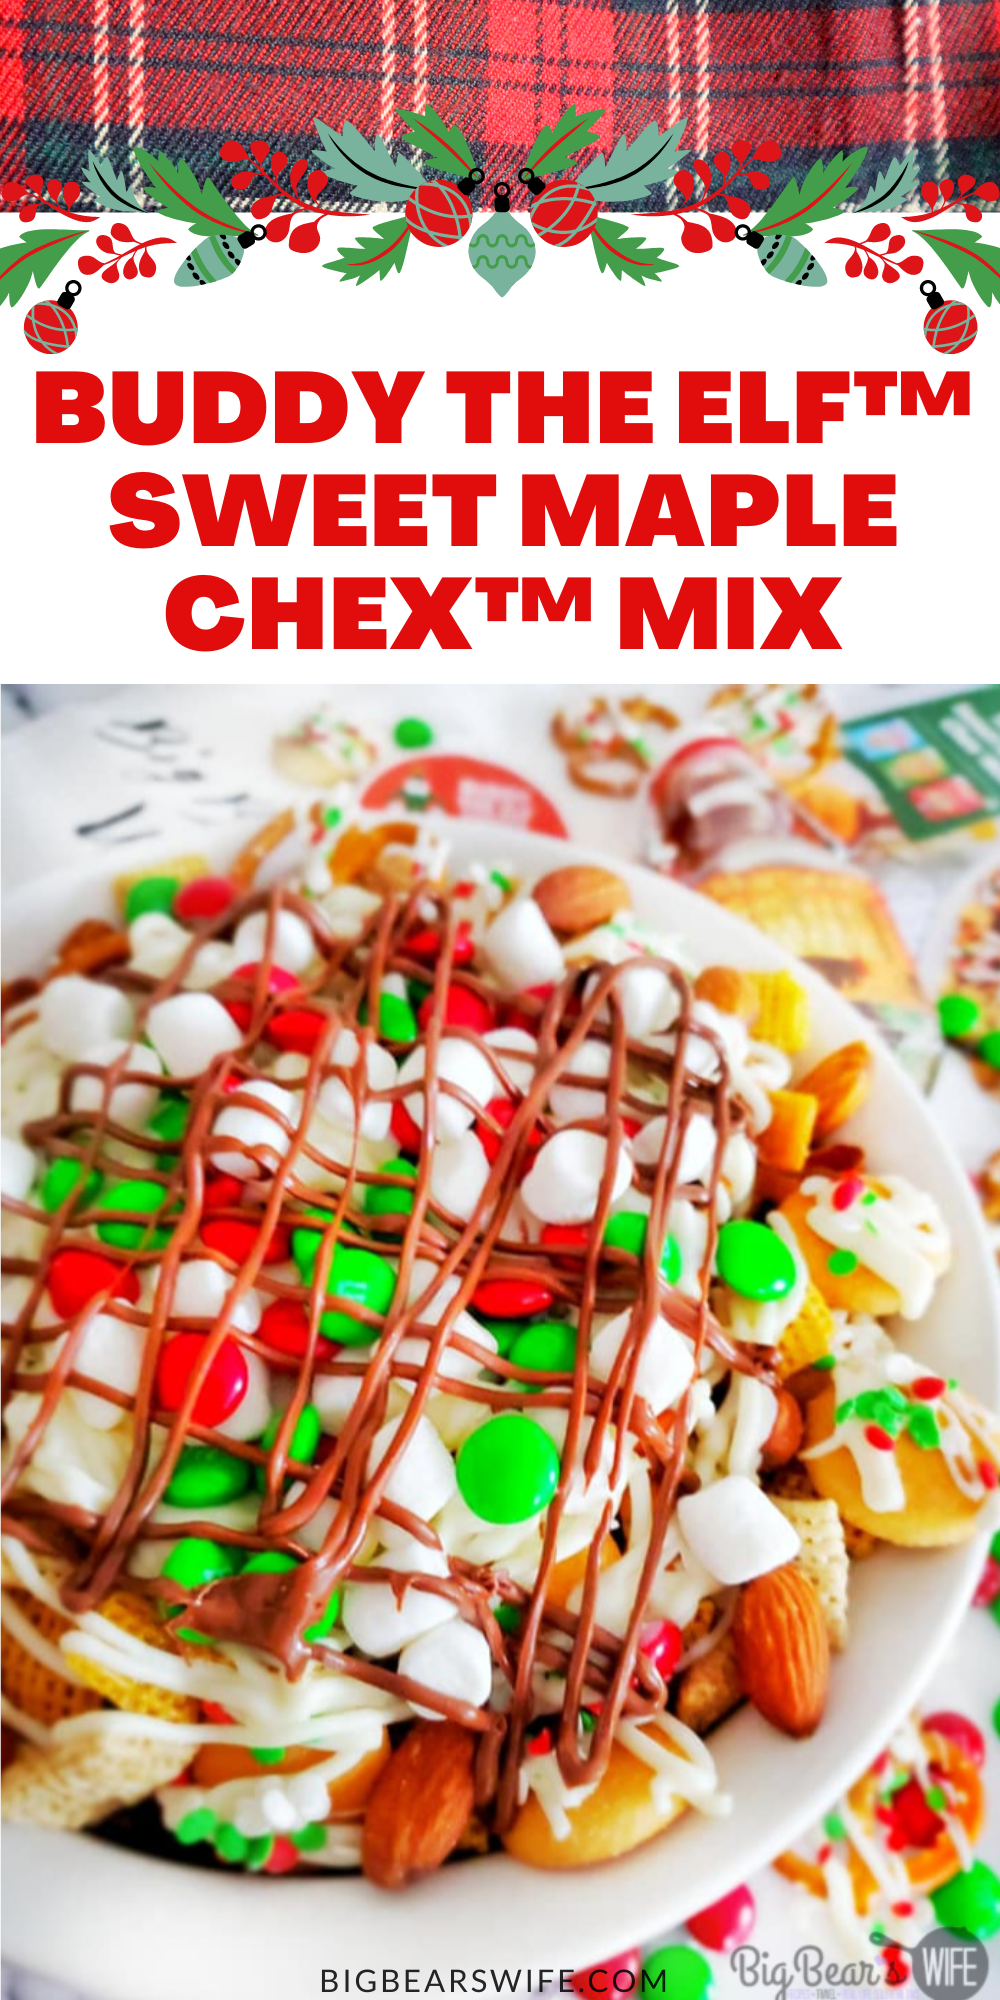 """Buddy The Elf Sweet Maple Chex Mix is a chex mix version of Buddy the Elf's Breakfast Spaghetti! Maple-sweetened Chex, Cinnamon Chex, mini cookies and pretzels get topped with white chocolate """"spaghetti, M&Ms and mini marshmallows. Don't forget the melted chocolate for the """"Chocolate Syrup"""" drizzle! via @bigbearswife"""